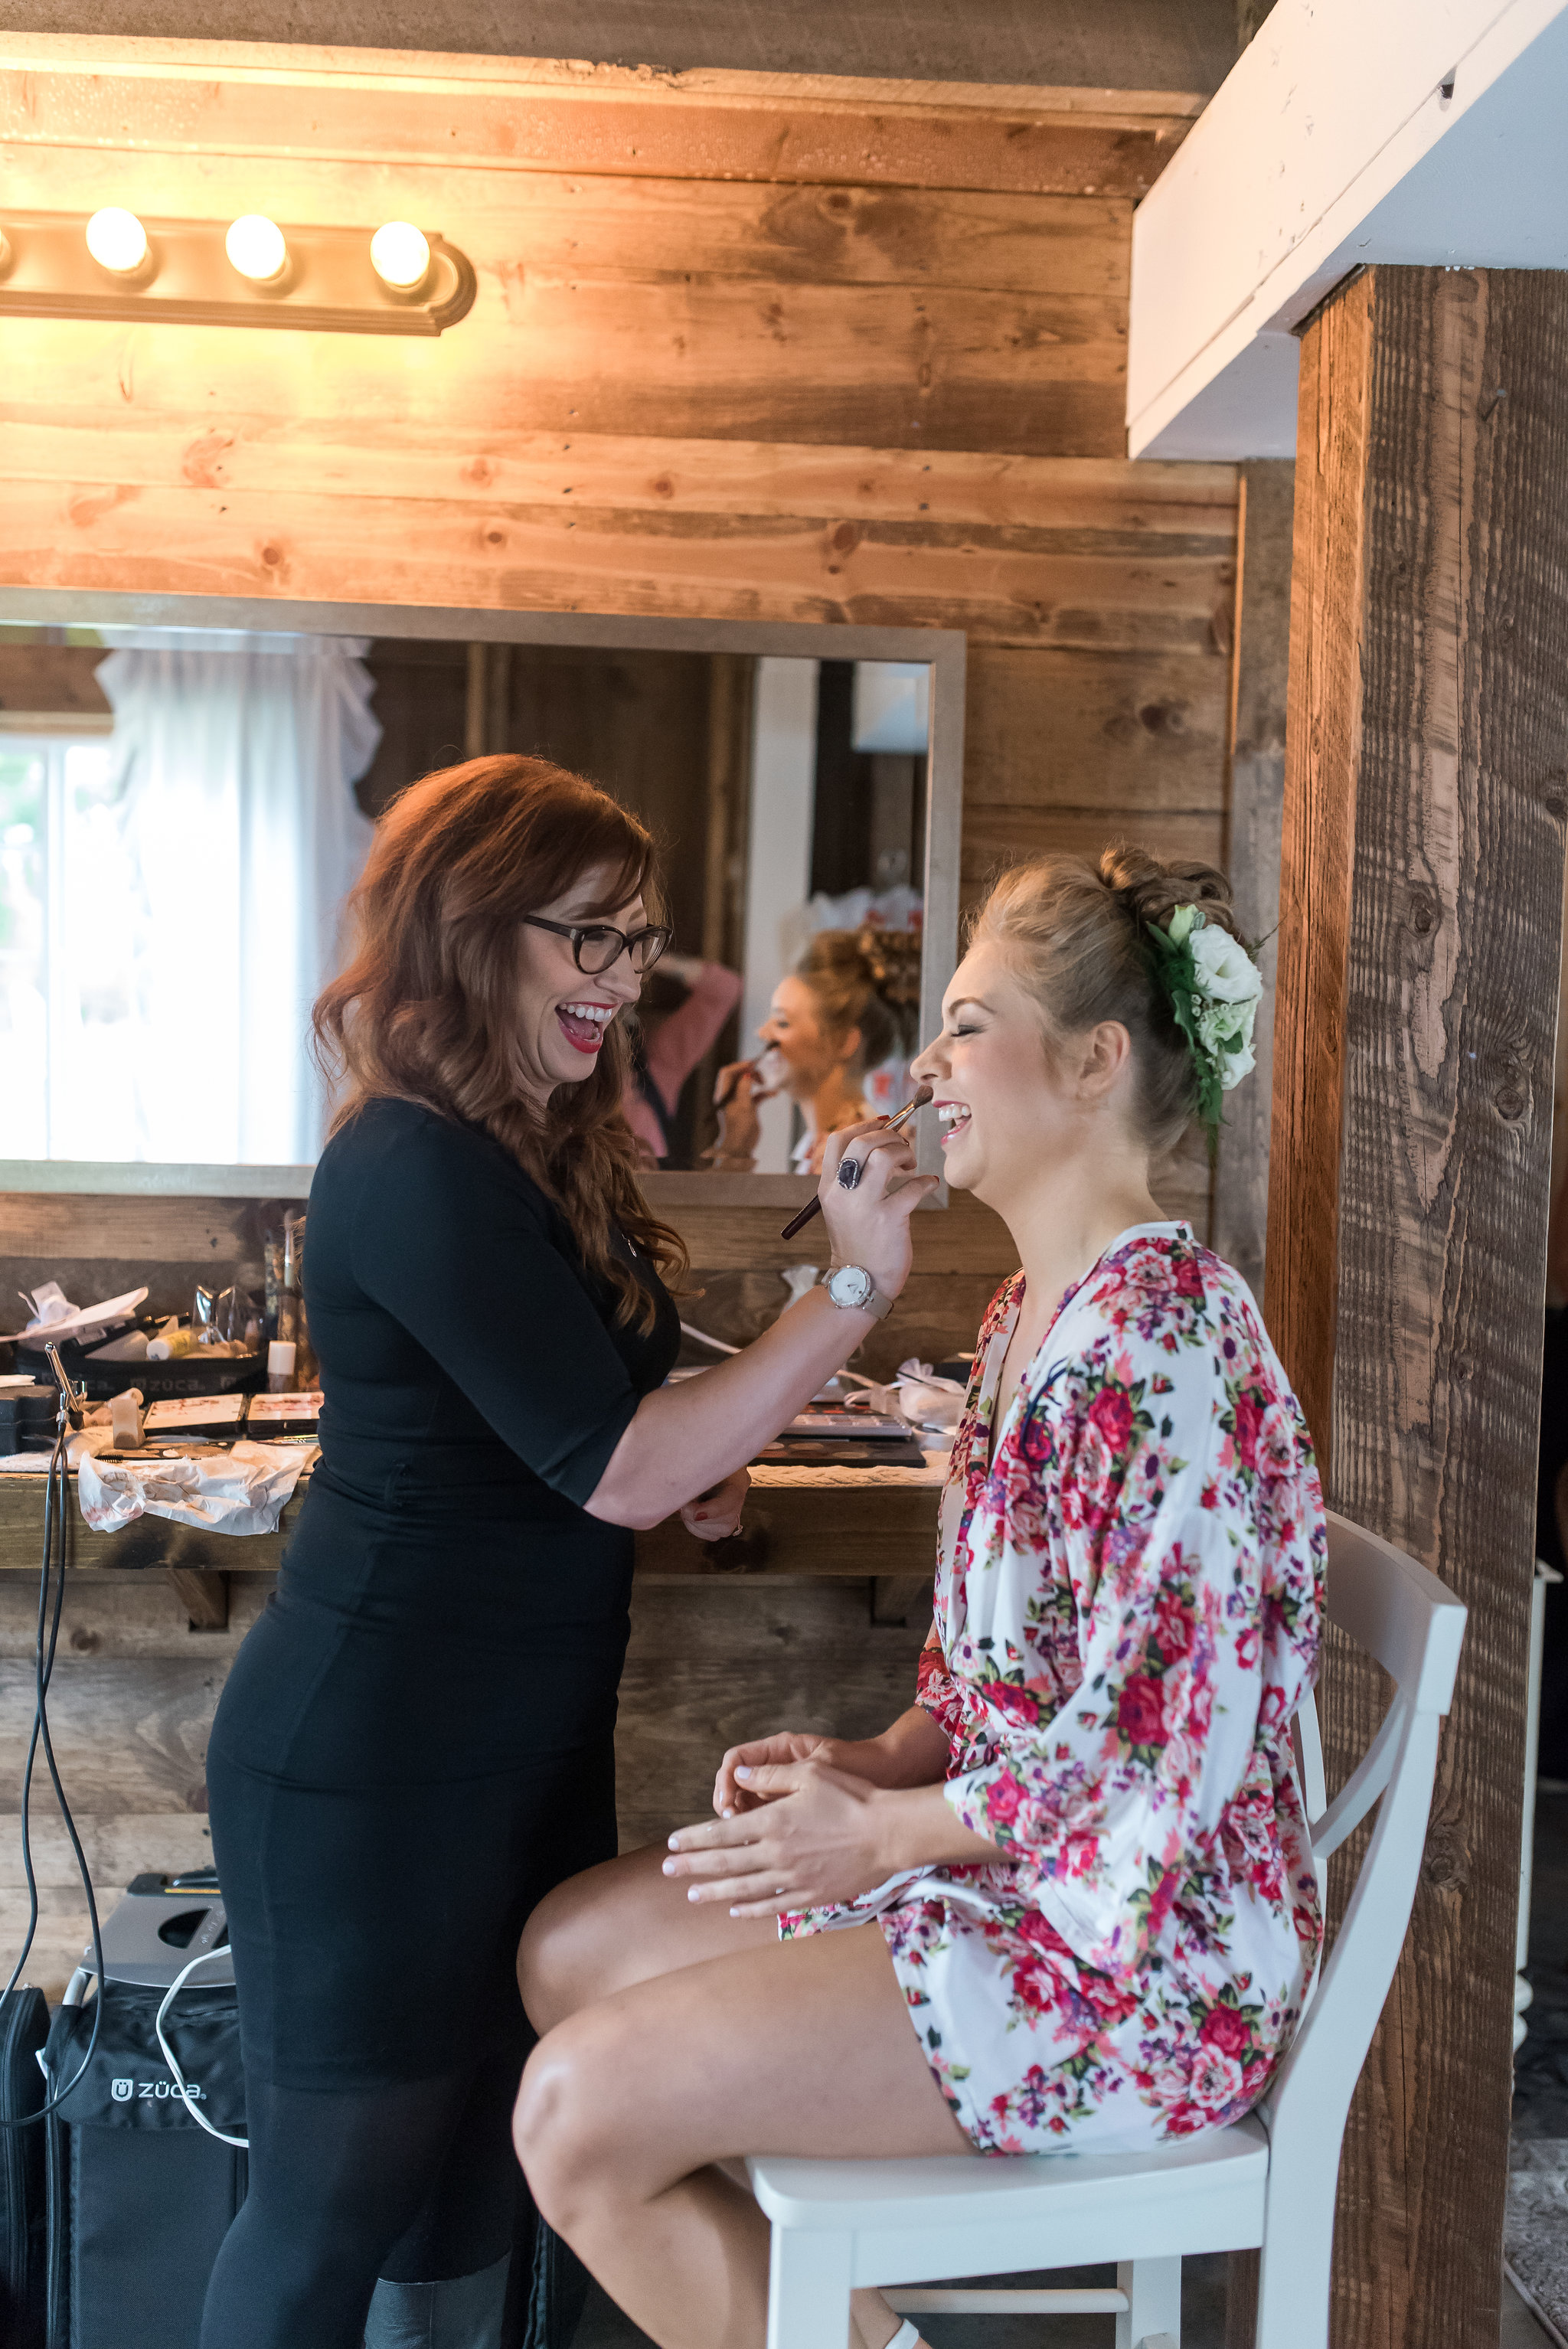 Carrie and Dave // Bloom Lake Barn // Kelly Birch Photography // Bride getting ready in floral print white robe // Brett Dorian Hair and Makeup // bridal getting ready room // Sixpence Events and Planning day of coordinating